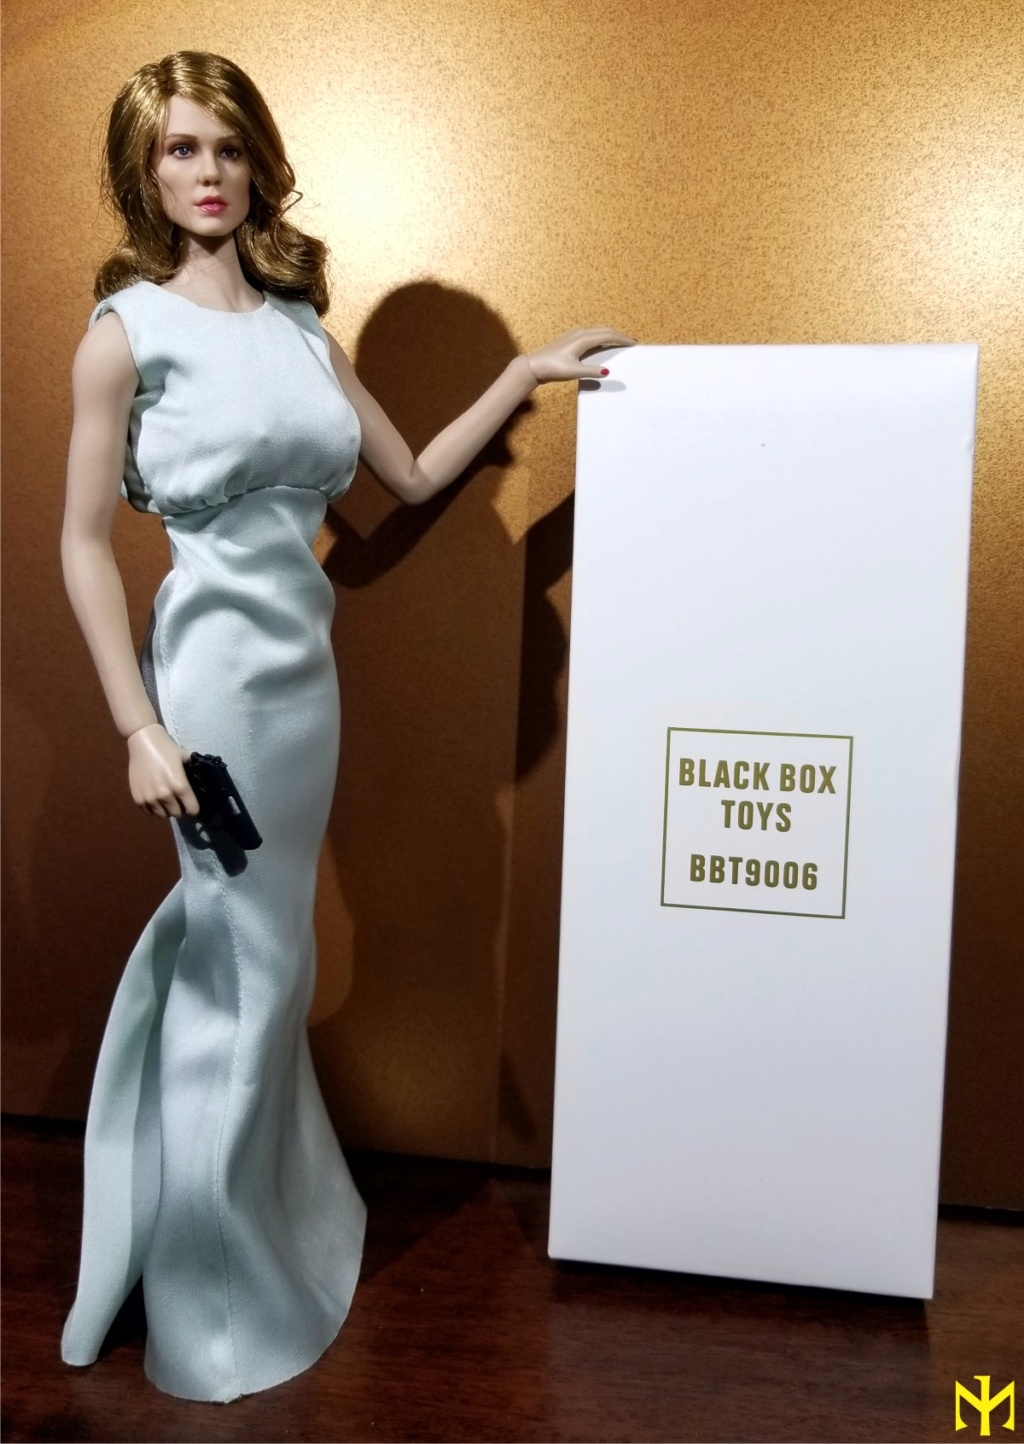 film - Black Box Toys BBT9006 Spectre Girl (Madeleine Swann/Lea Seydoux) Review Bbtsg012